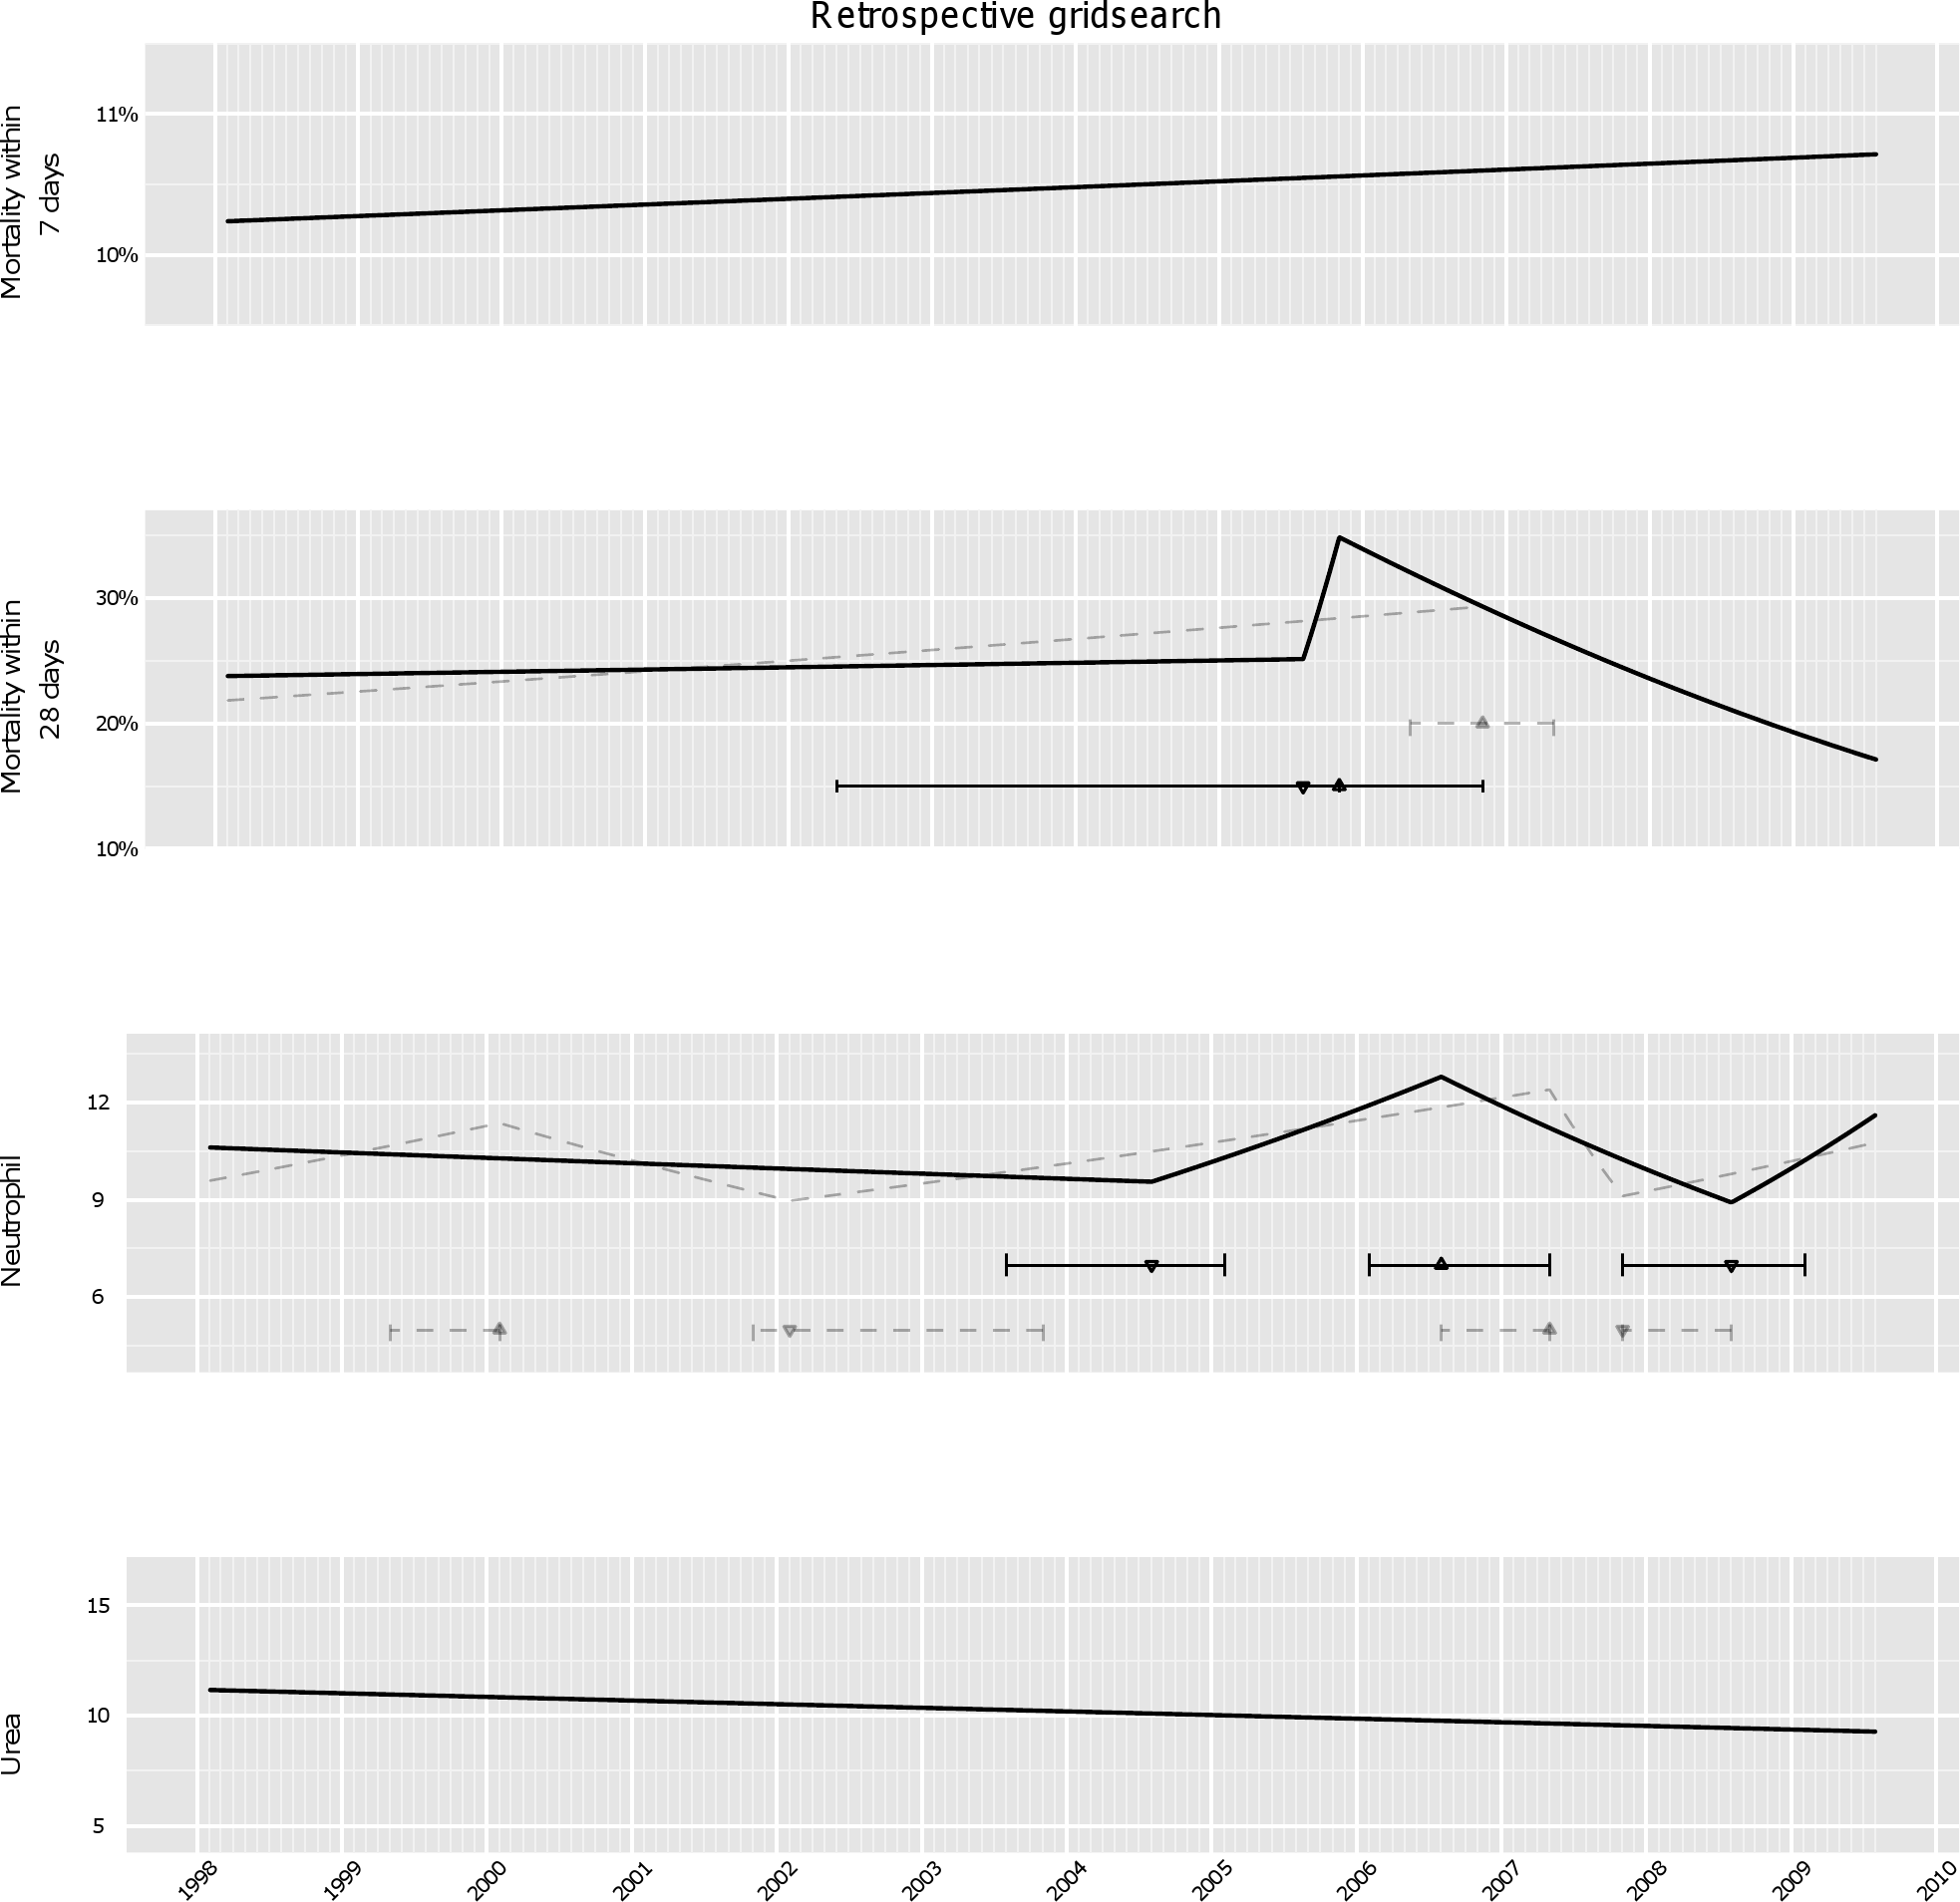 Analysis of secular trends over the whole study period using retrospective gridsearch.